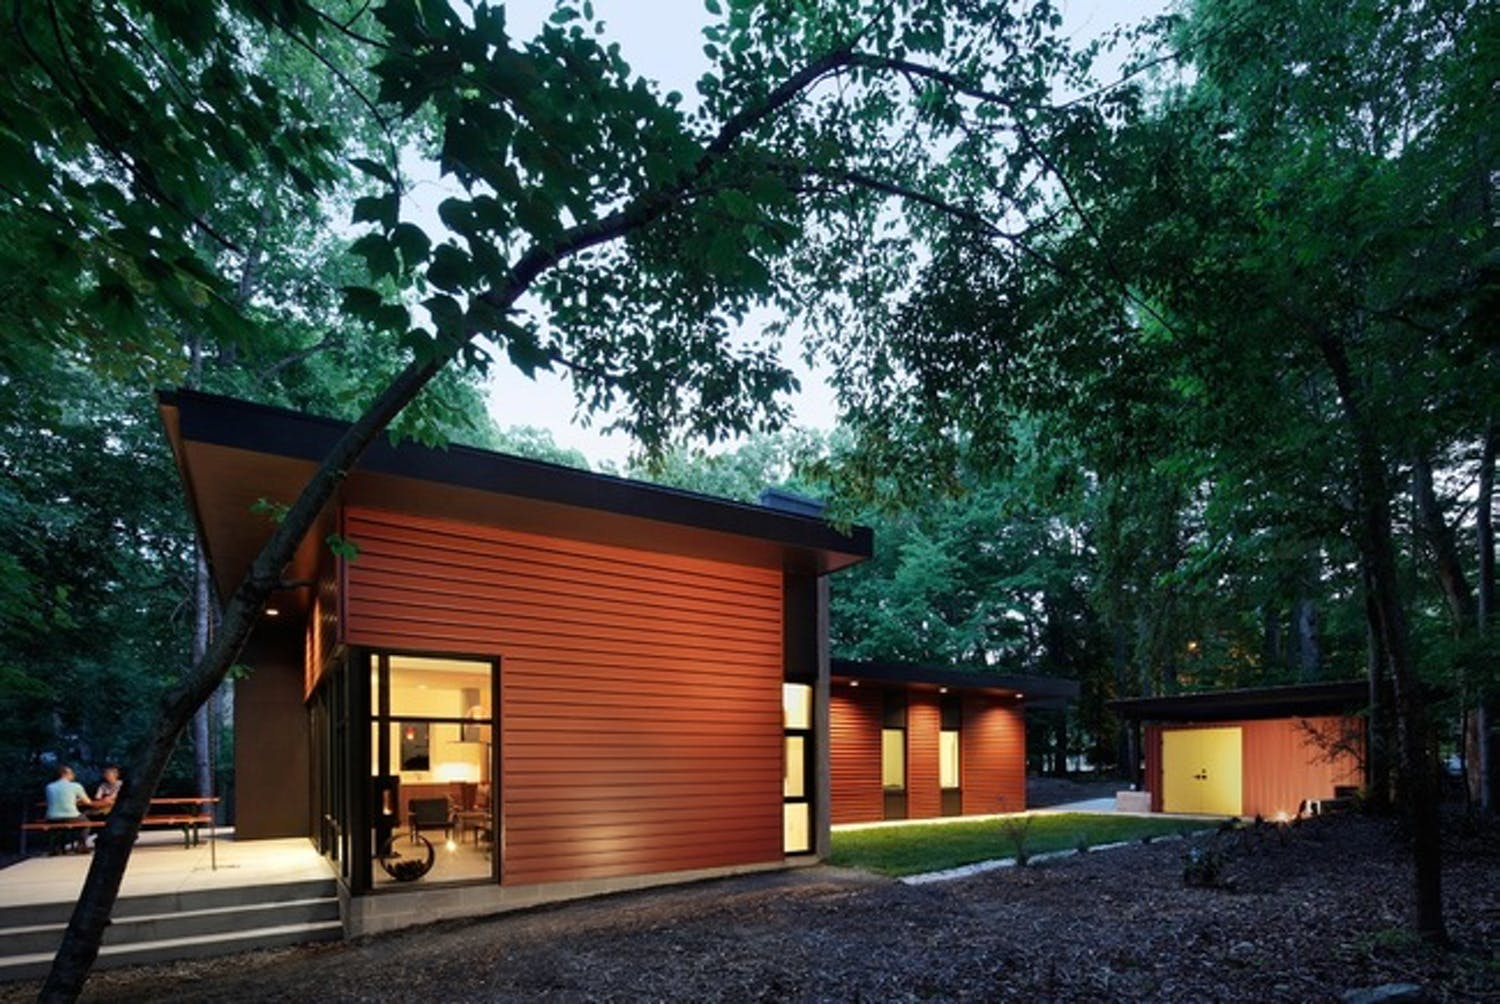 2015 george matsumoto prize winners for north carolina modernist homes